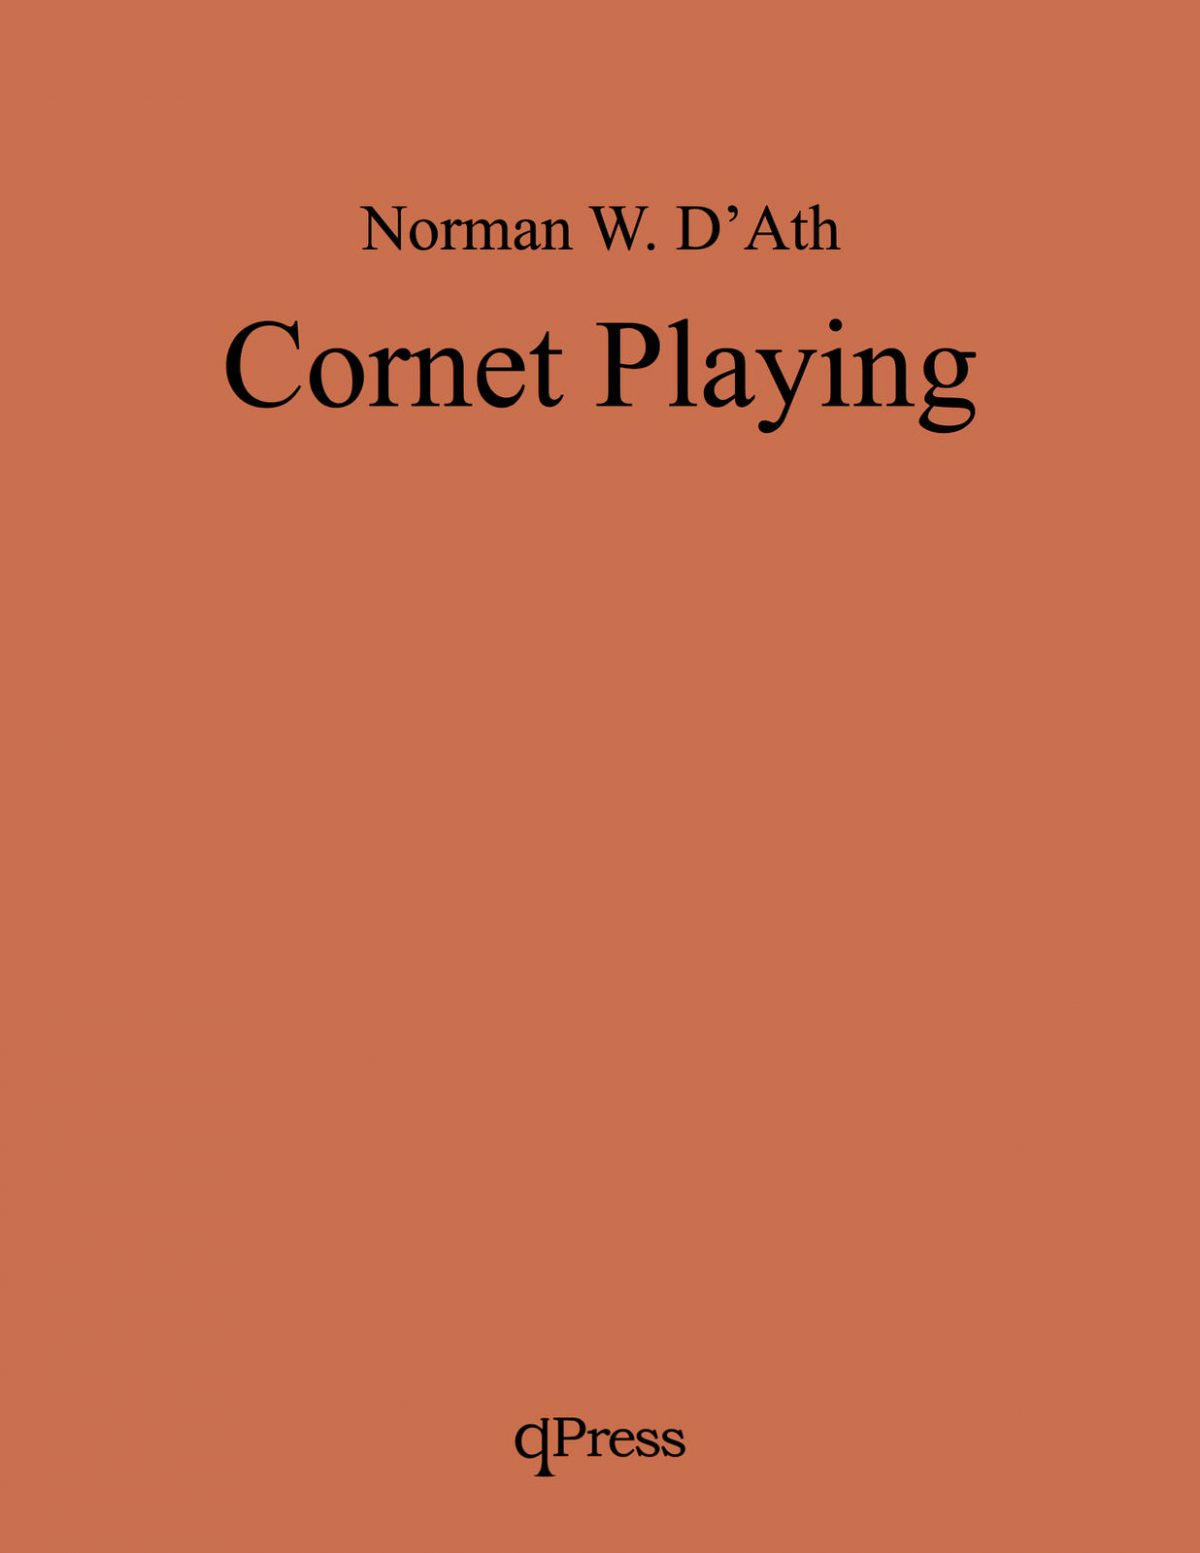 D'Ath, Norman, Cornet Playing